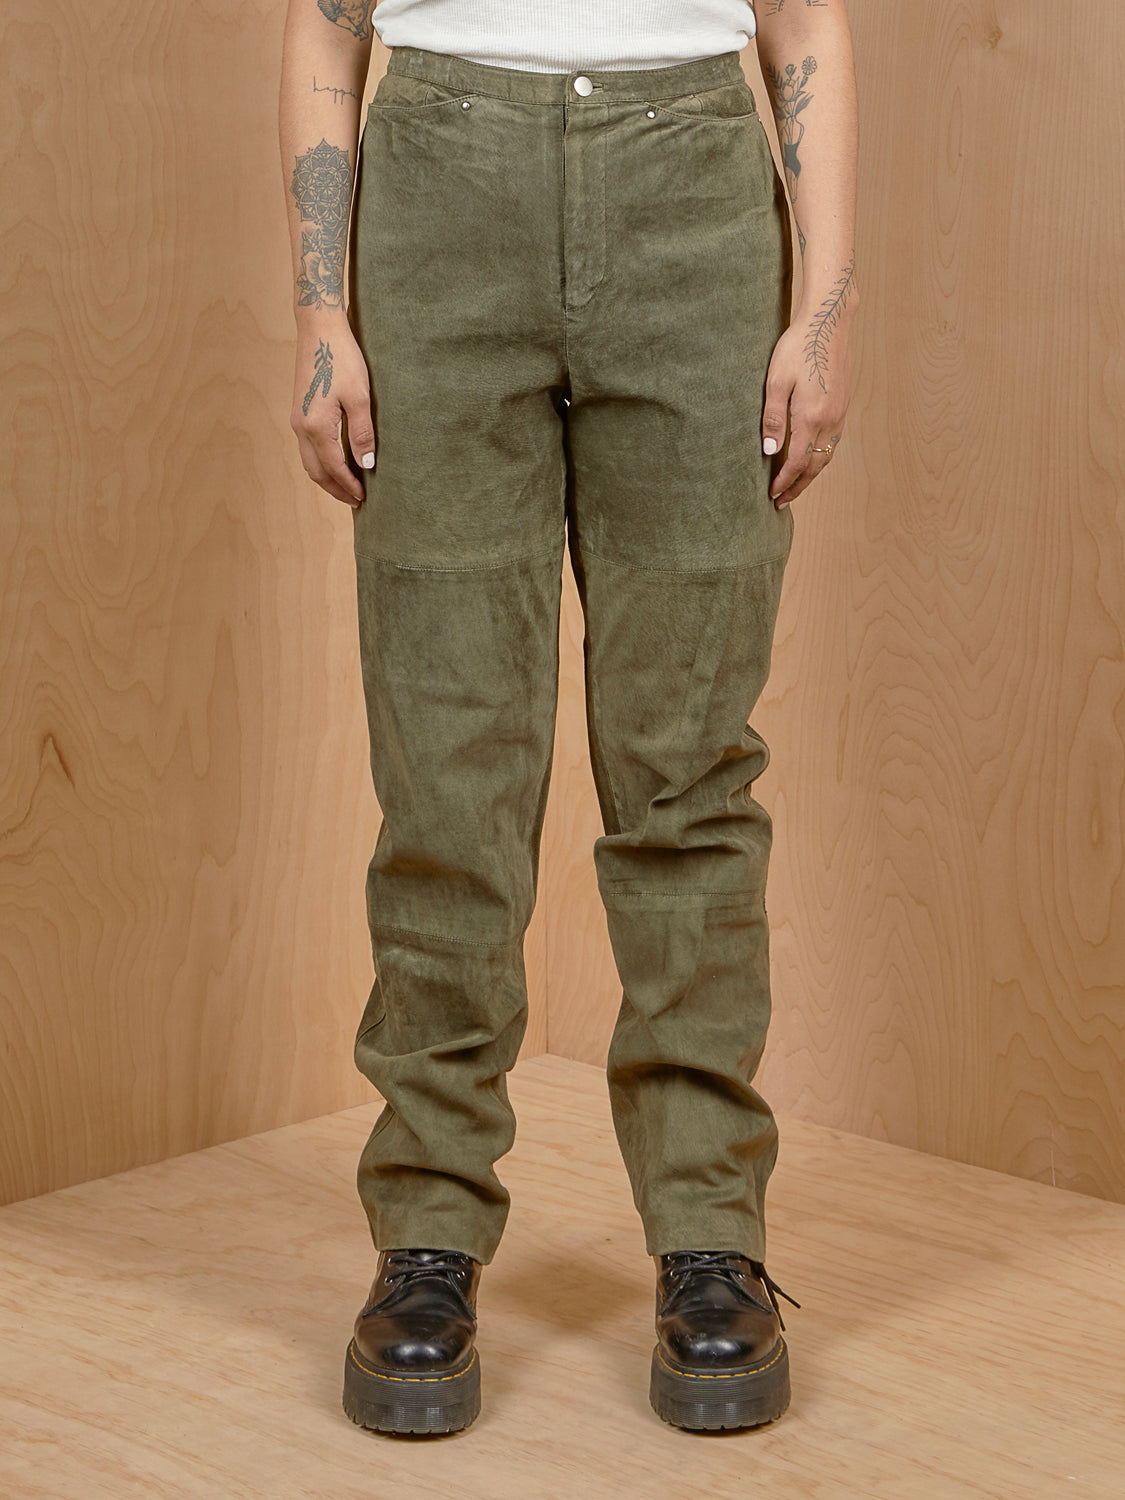 Vintage Dark Green Suede Pants